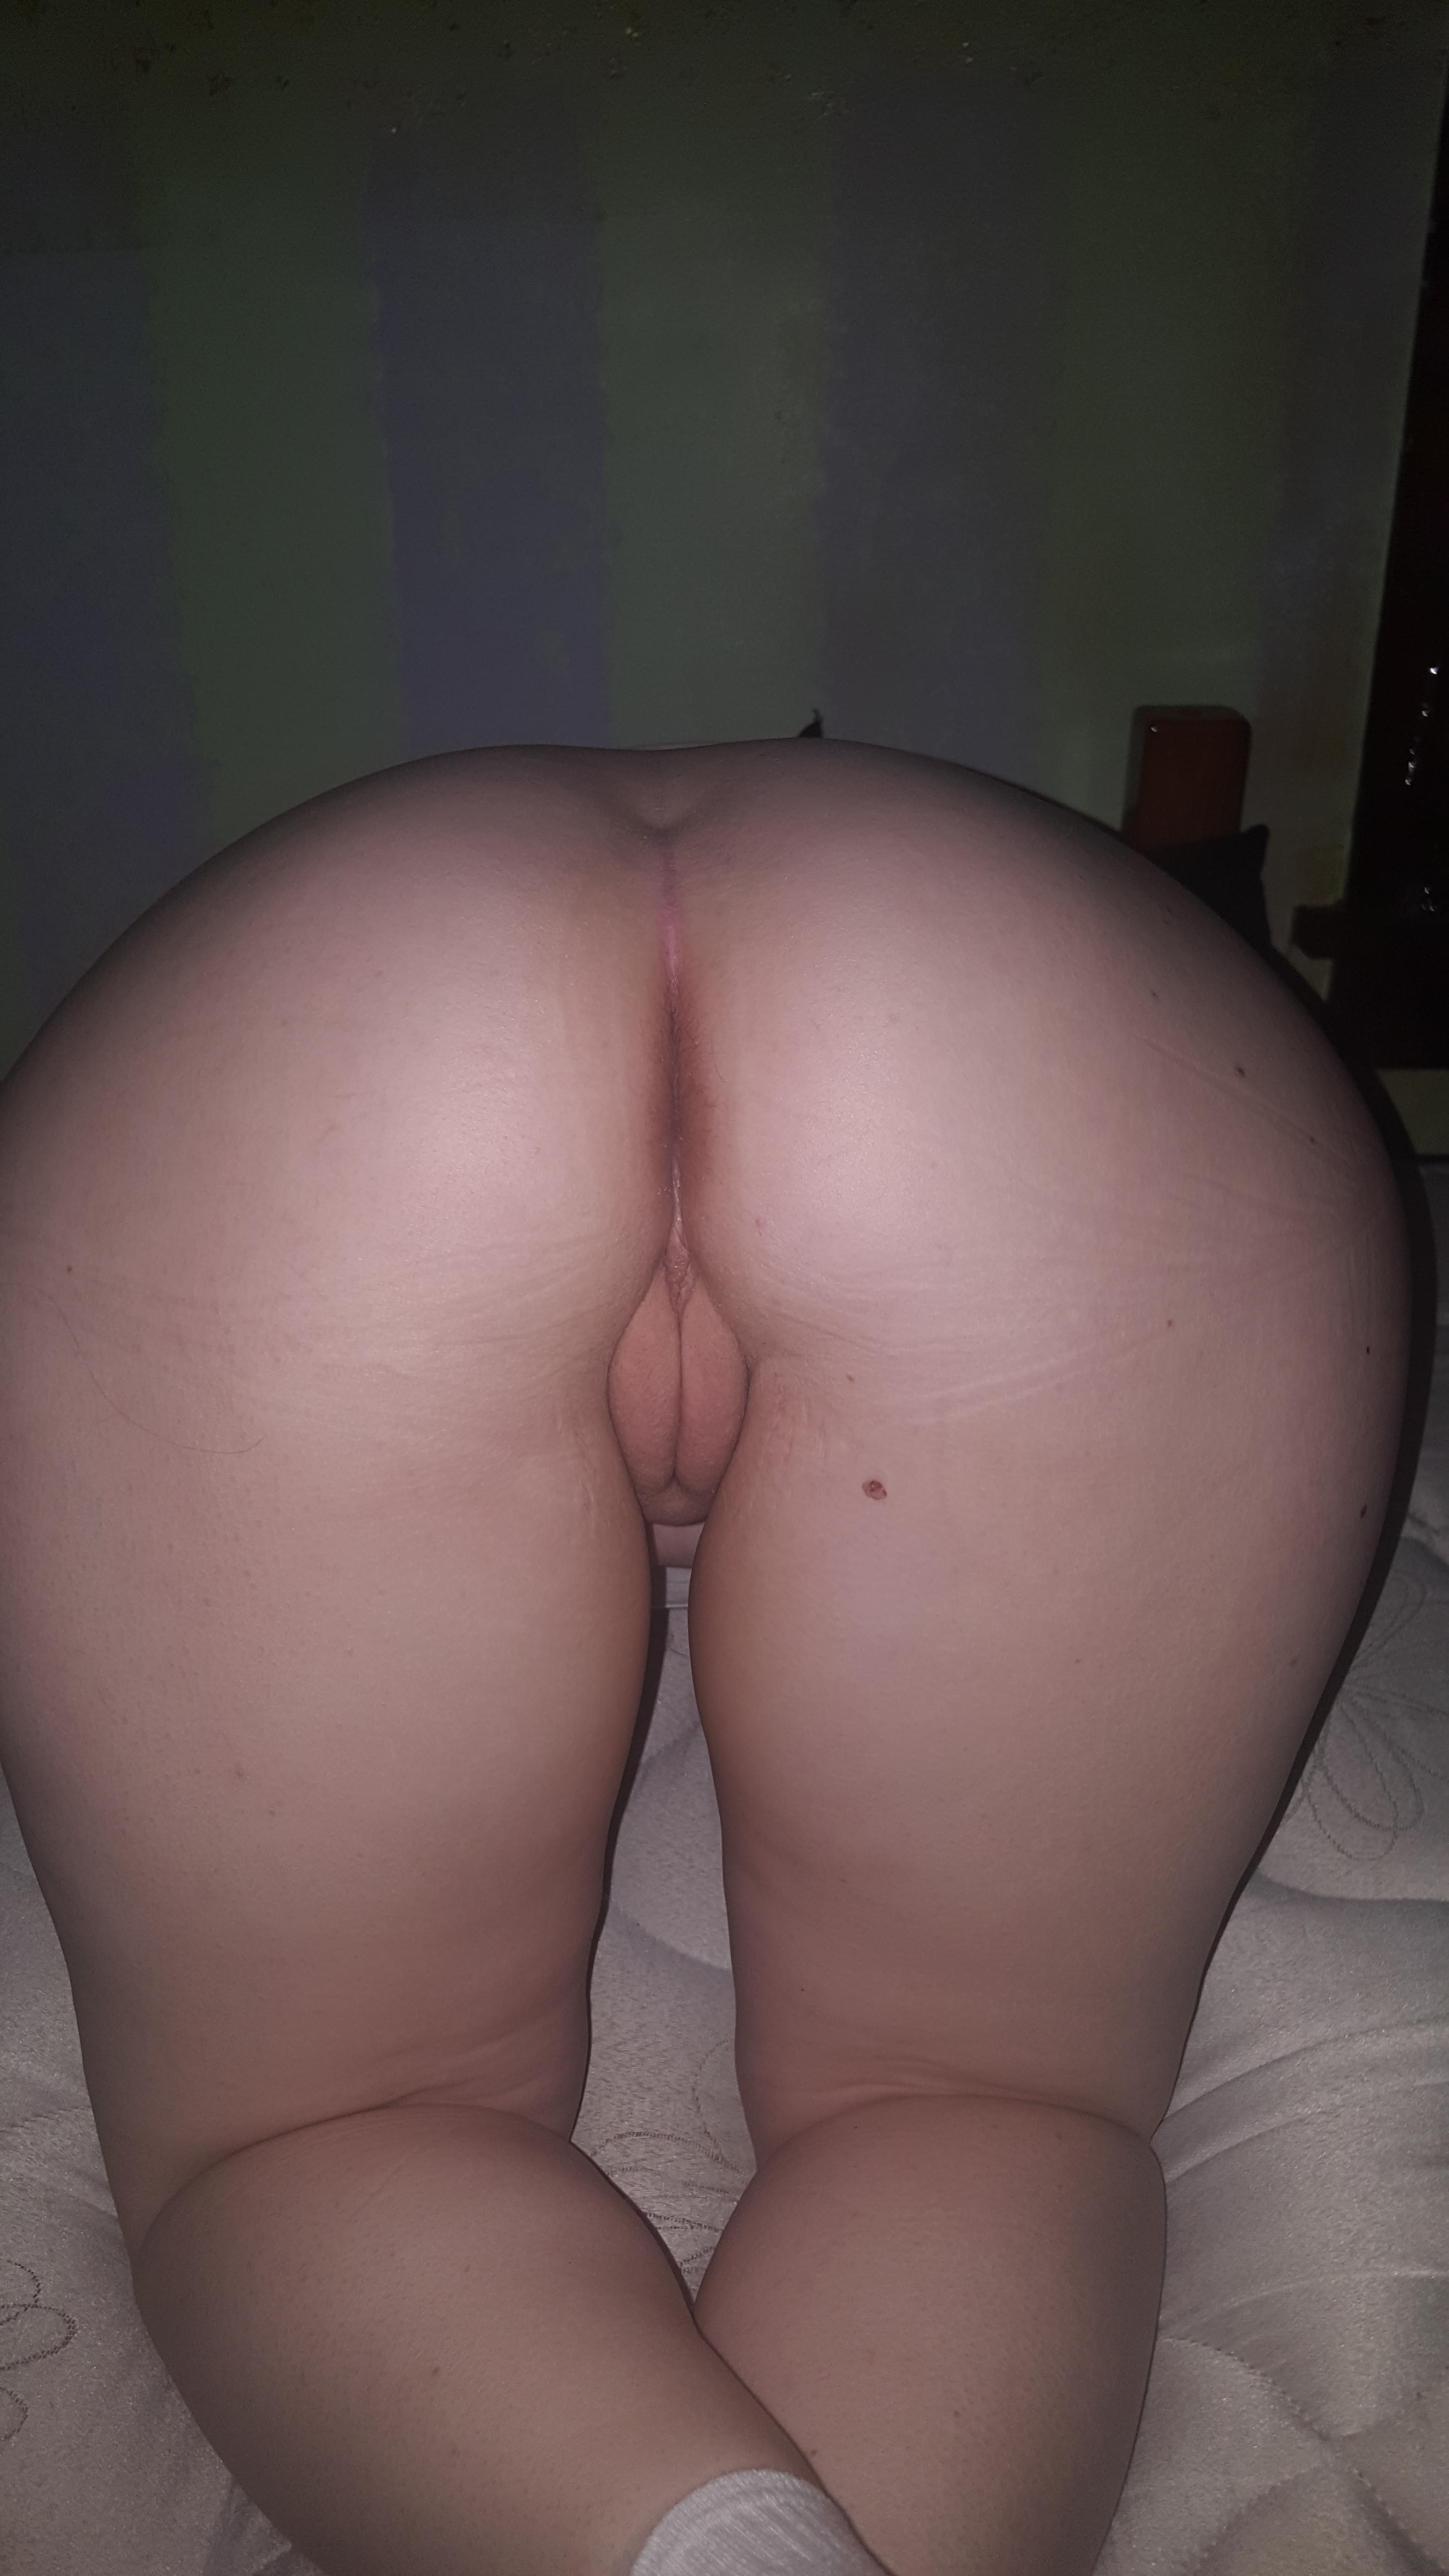 shemale cums in her own ass